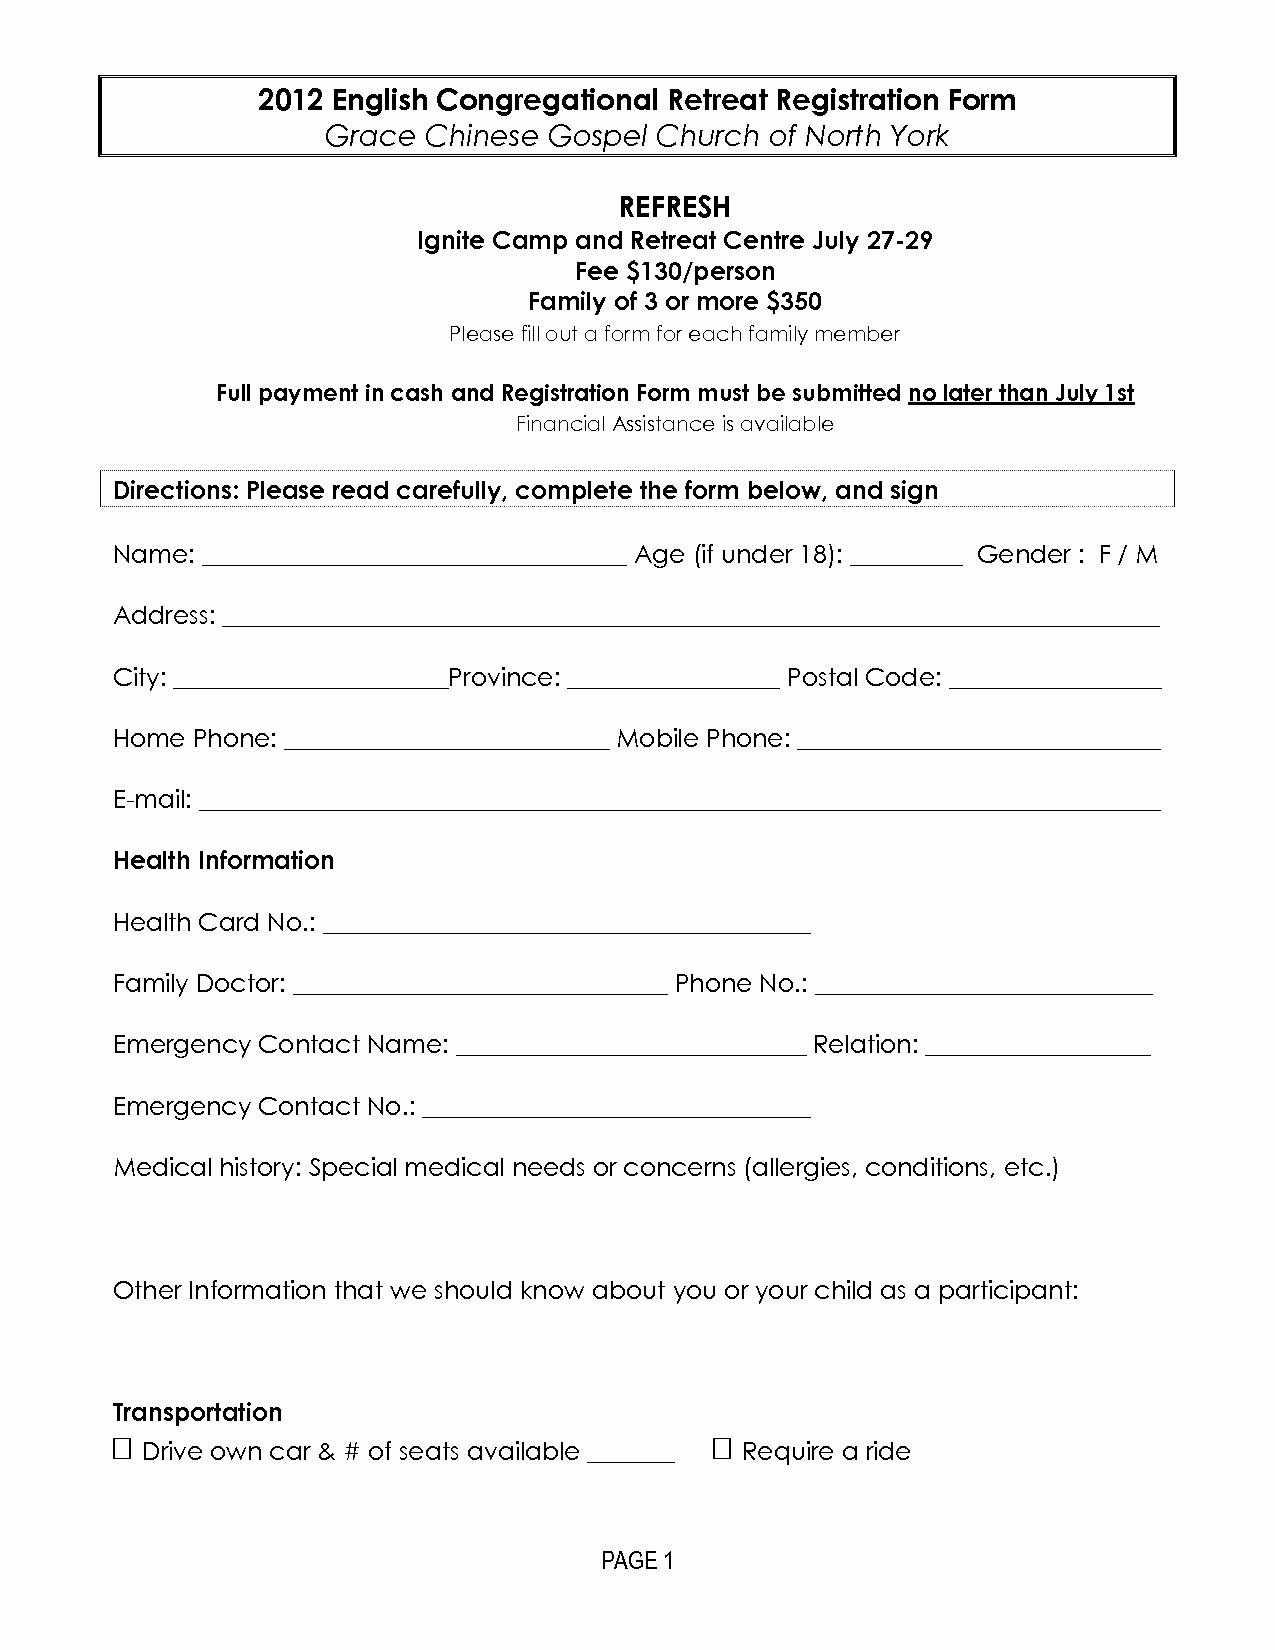 Registration form Template Word Awesome Retreat Registration forms